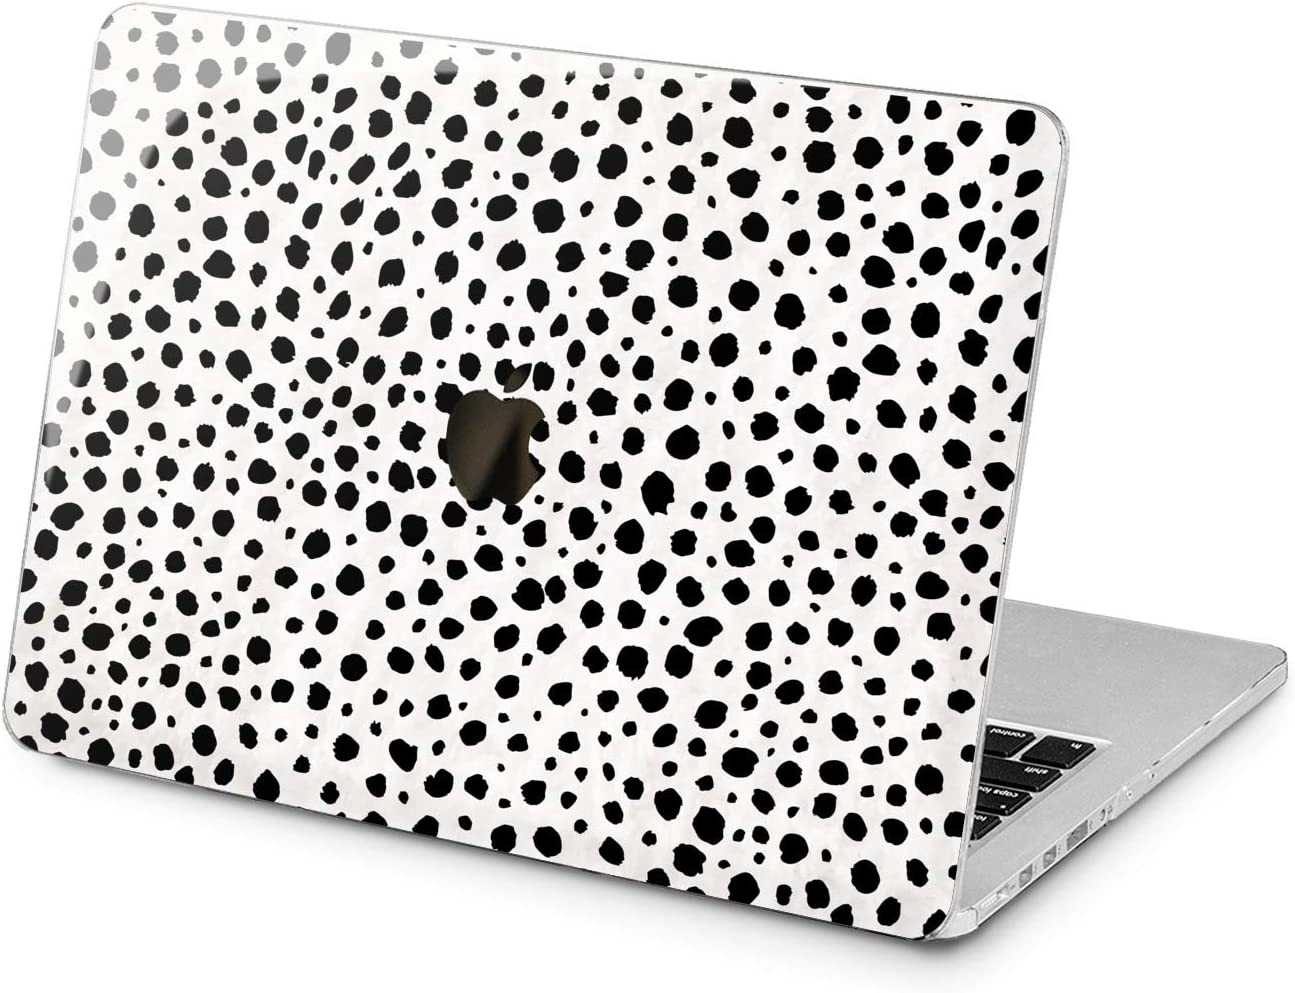 "Cavka Hard Shell Case for Apple MacBook Pro 13"" 2019 15"" 2018 Air 13"" 2020 Retina 2015 Mac 11"" Mac 12"" Fancy Black Trendy Cover White Protective Design Abstract Dot Leopard Laptop Plastic Print Cow"